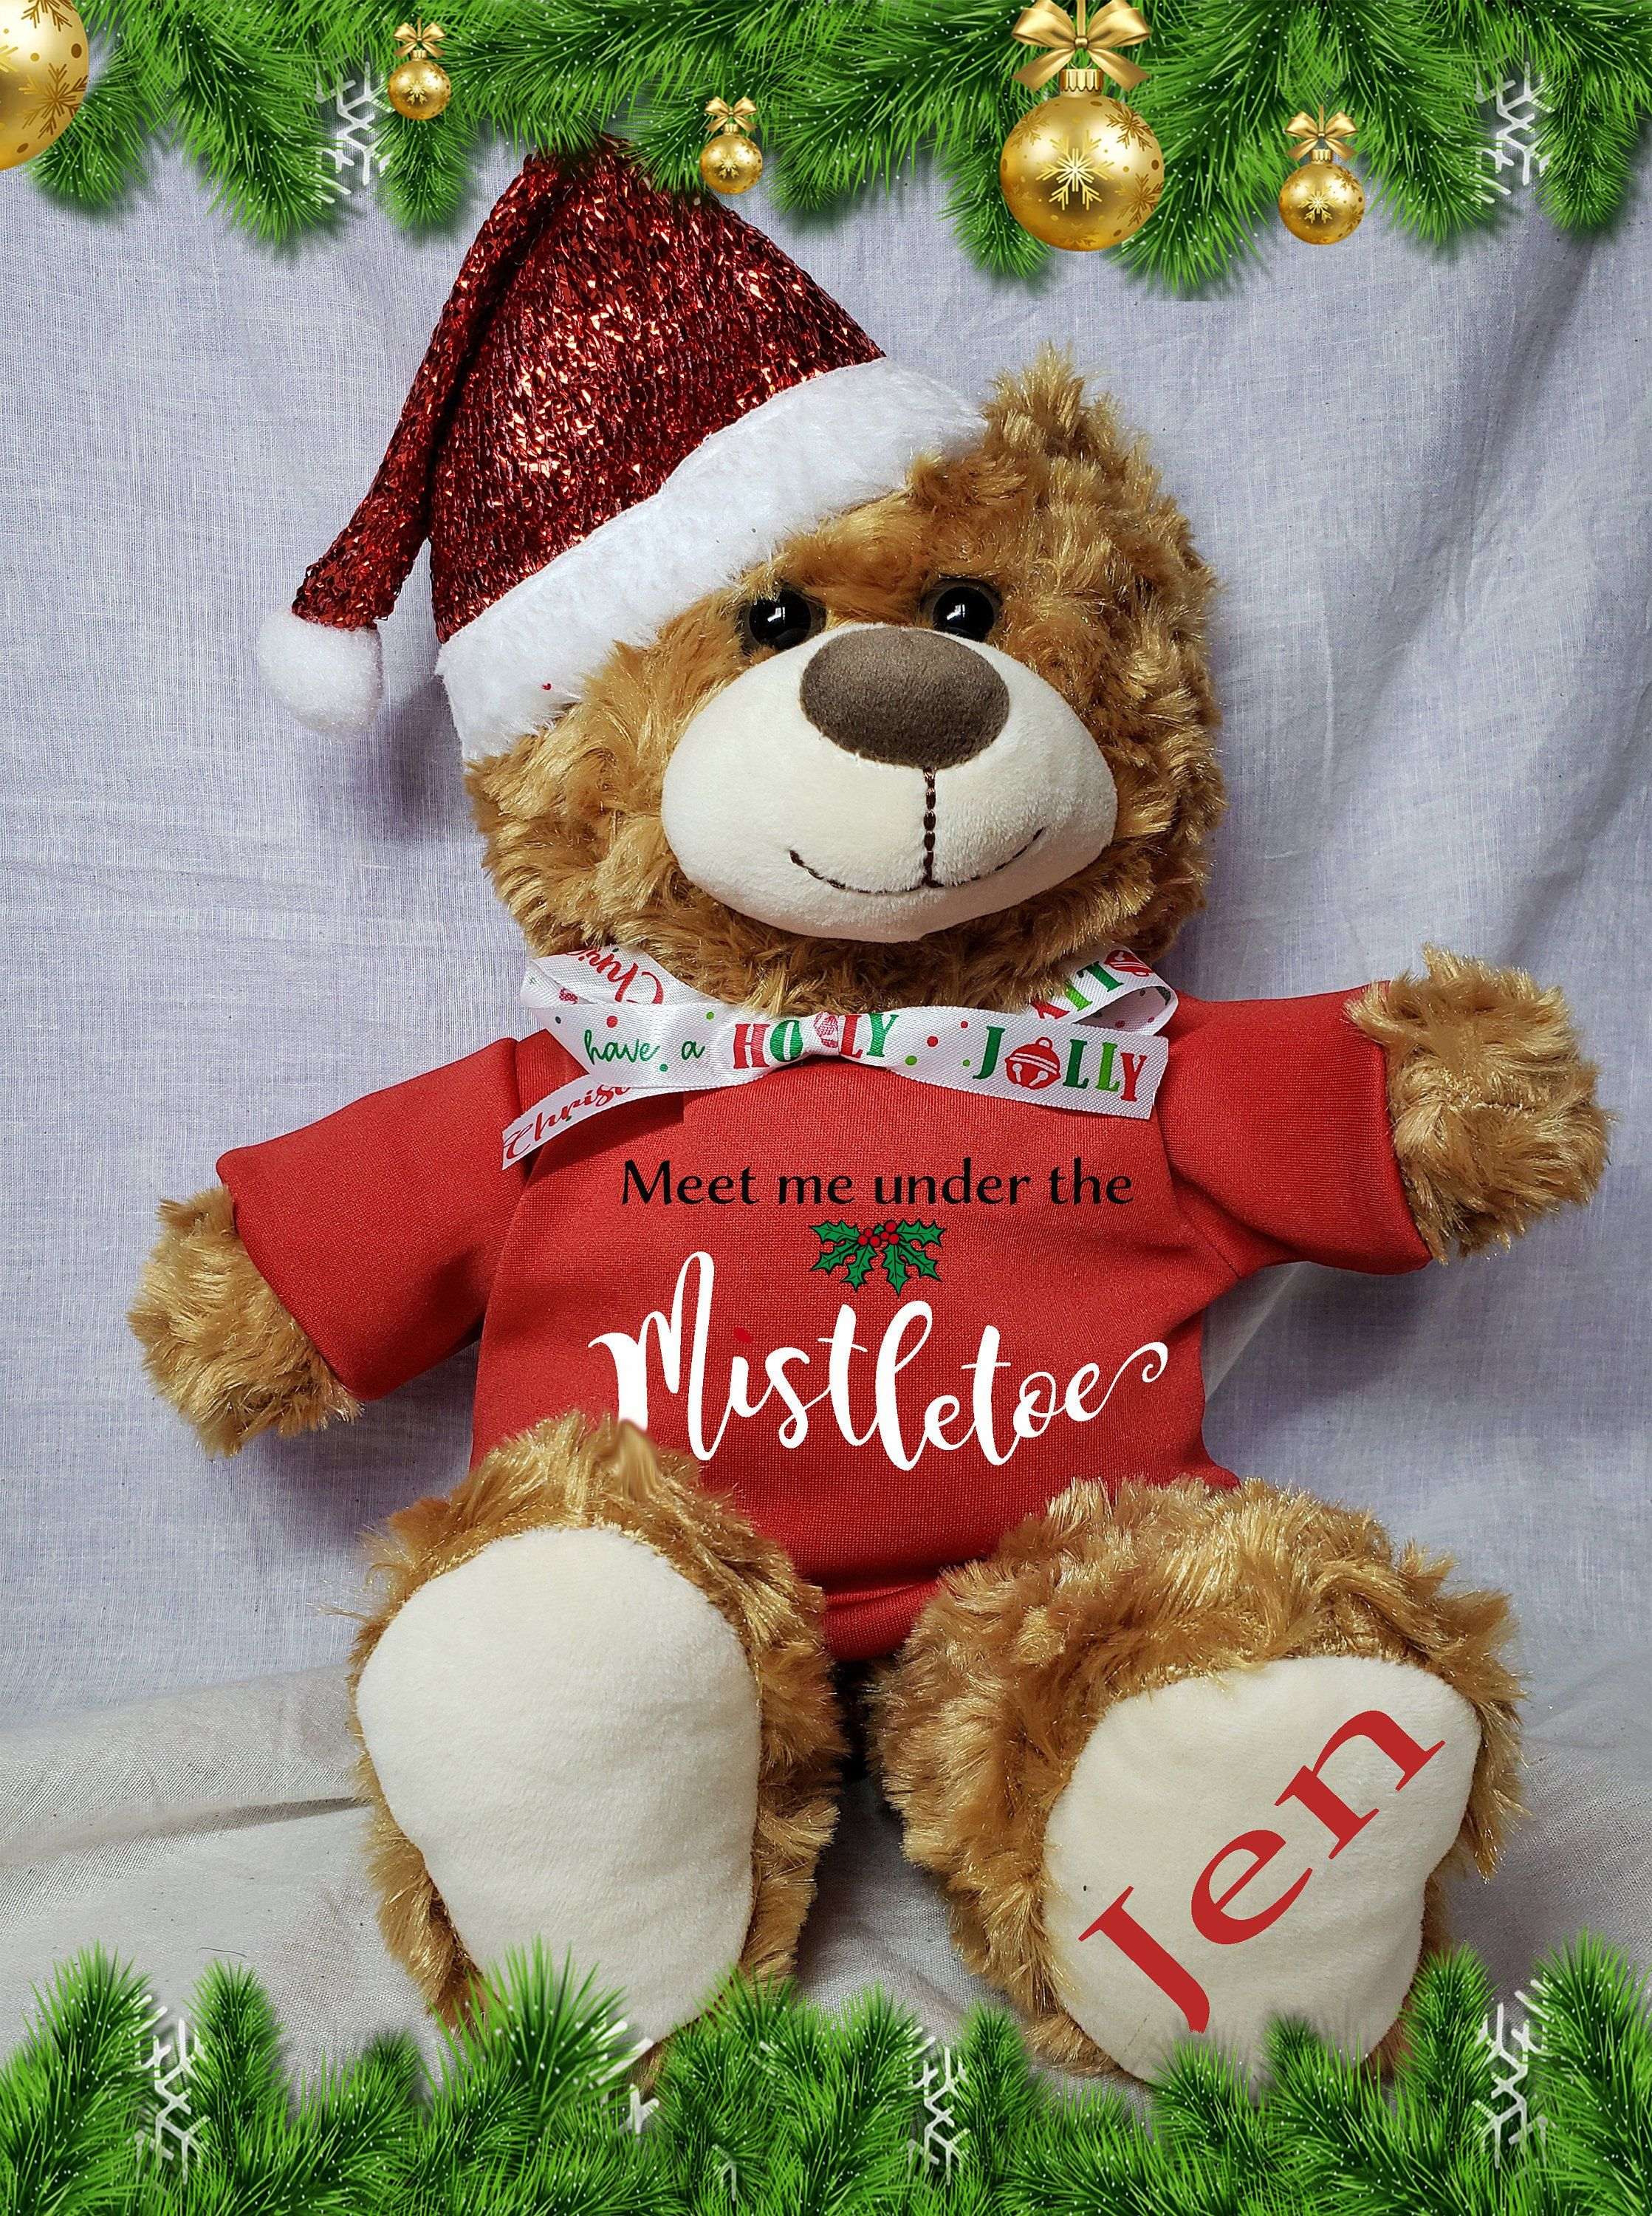 Personalized Teddy Bear For Valentine S Gift Love Gift Etsy Personalised Teddy Bears Valentine Gifts Teddy Bear